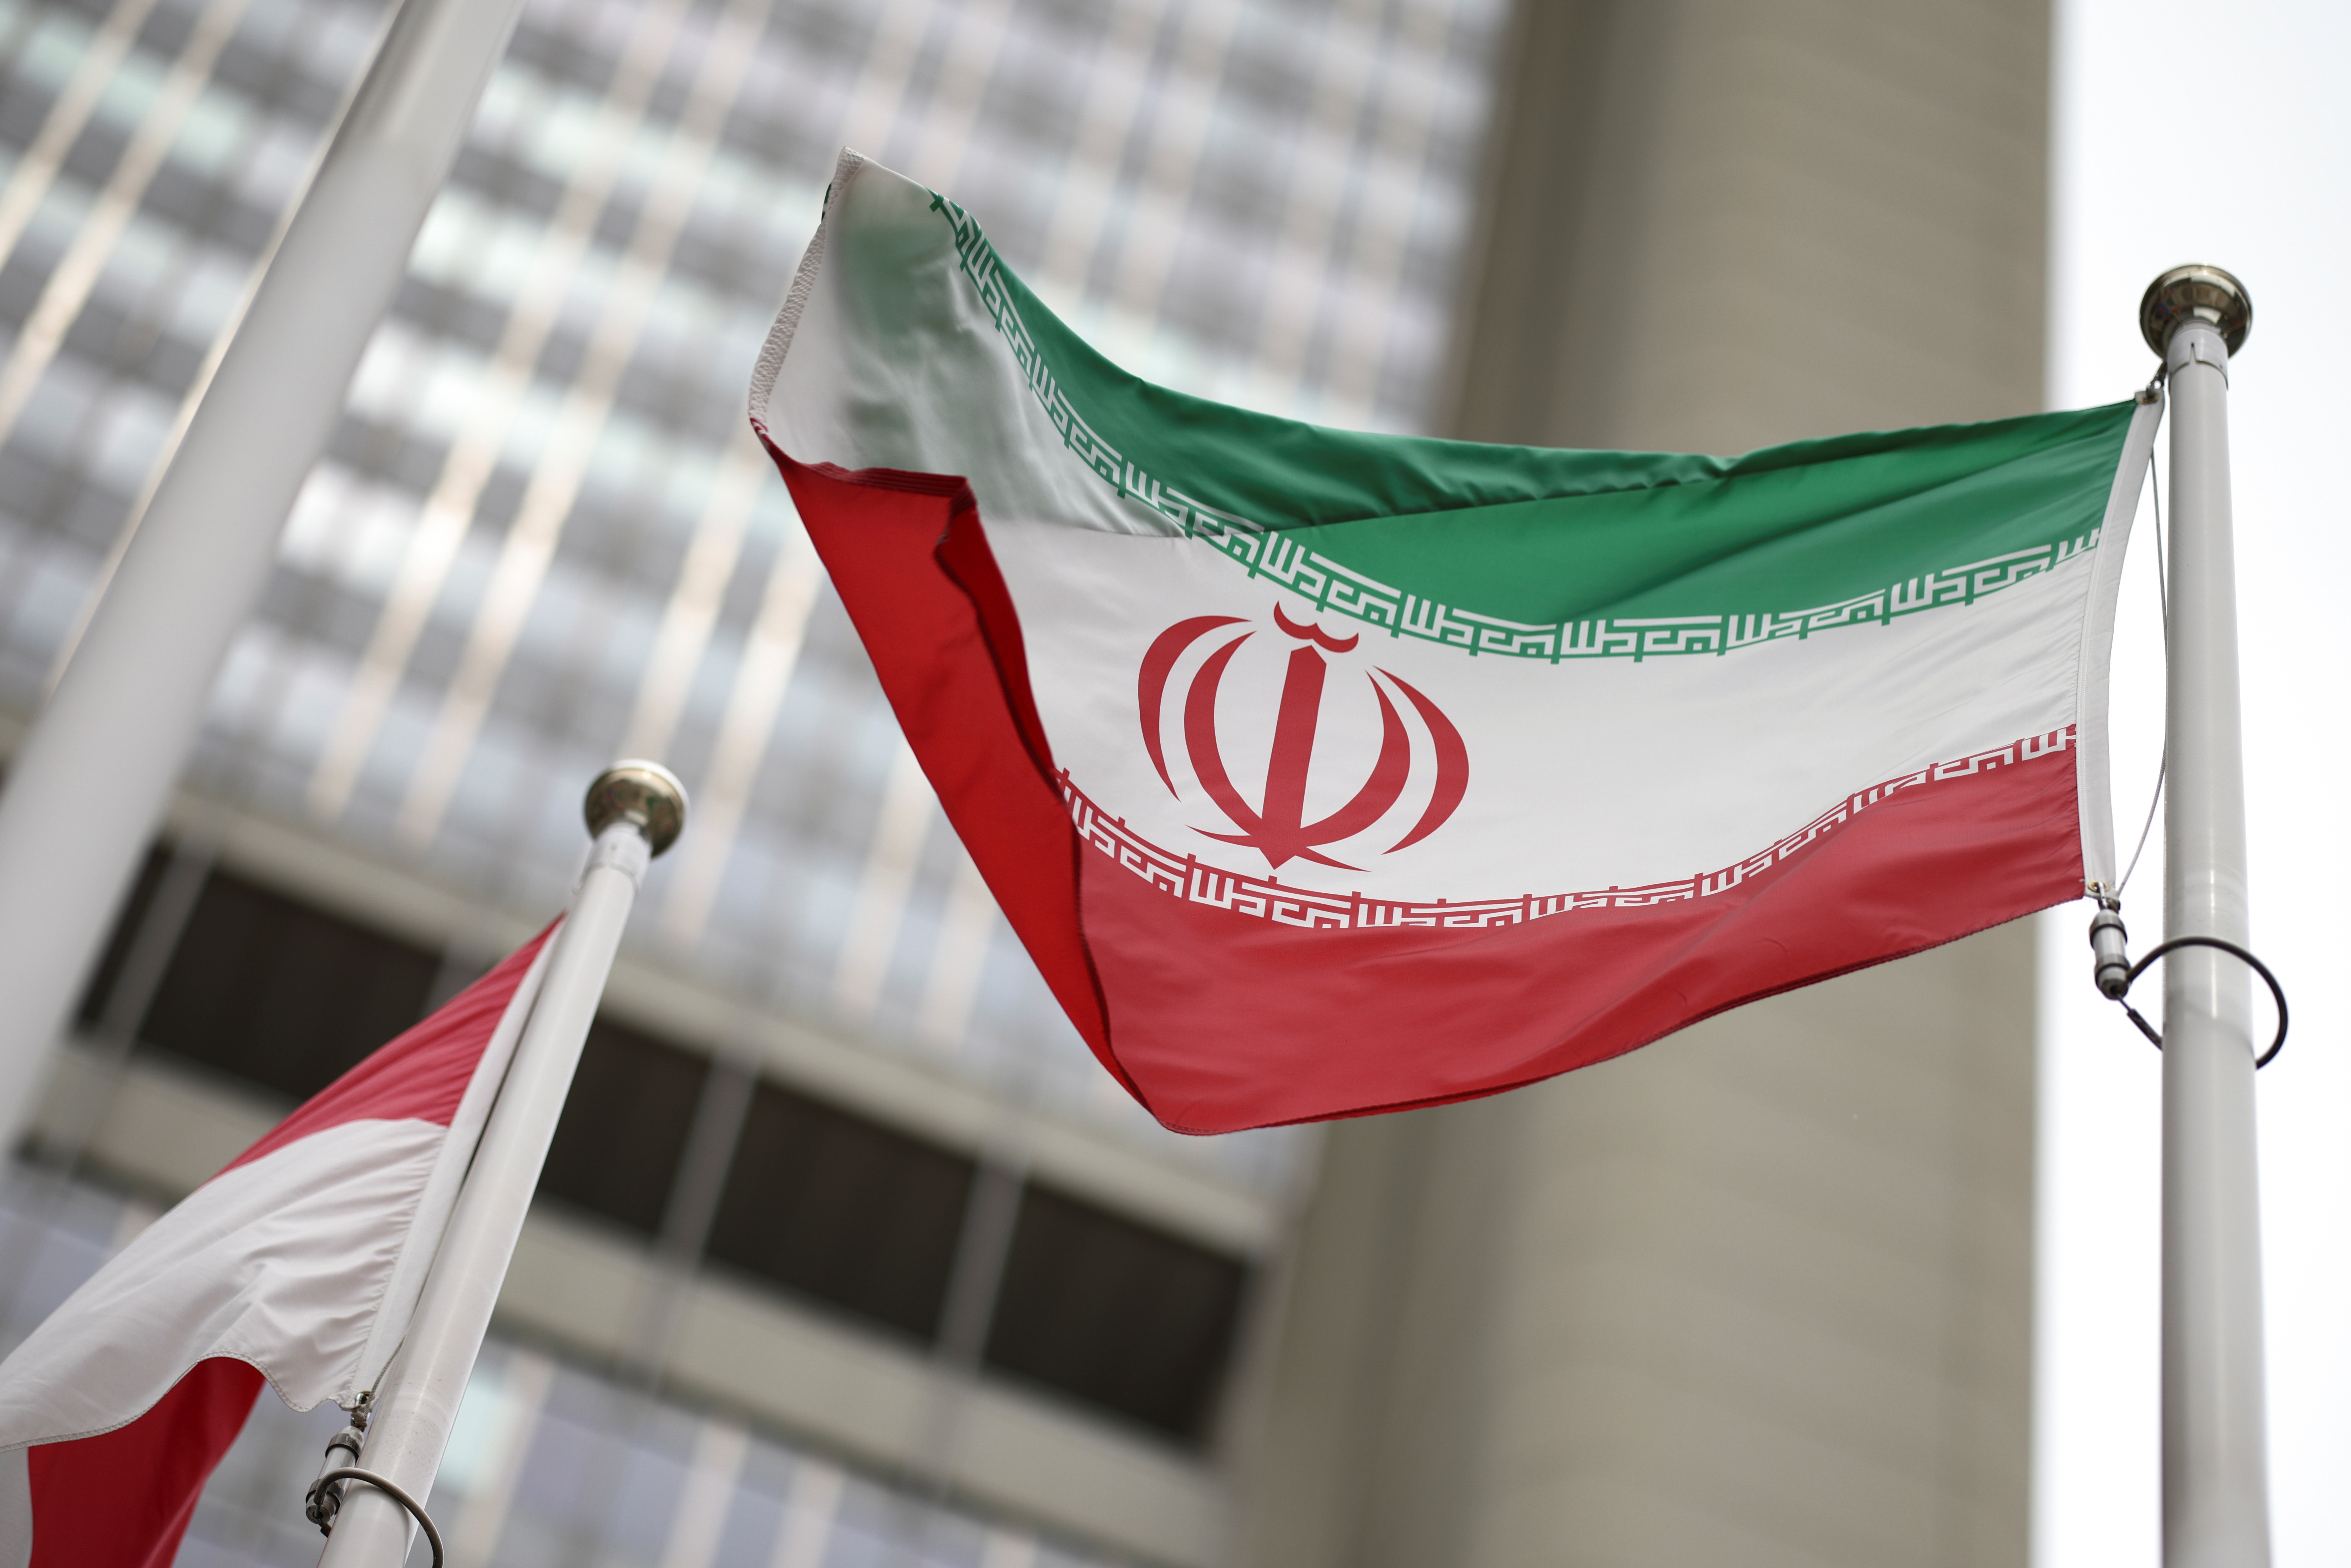 Iranian flag flies in front of the UN office building, housing IAEA headquarters, amid the coronavirus disease (COVID-19) pandemic, in Vienna, Austria, May 24, 2021. REUTERS/Lisi Niesner